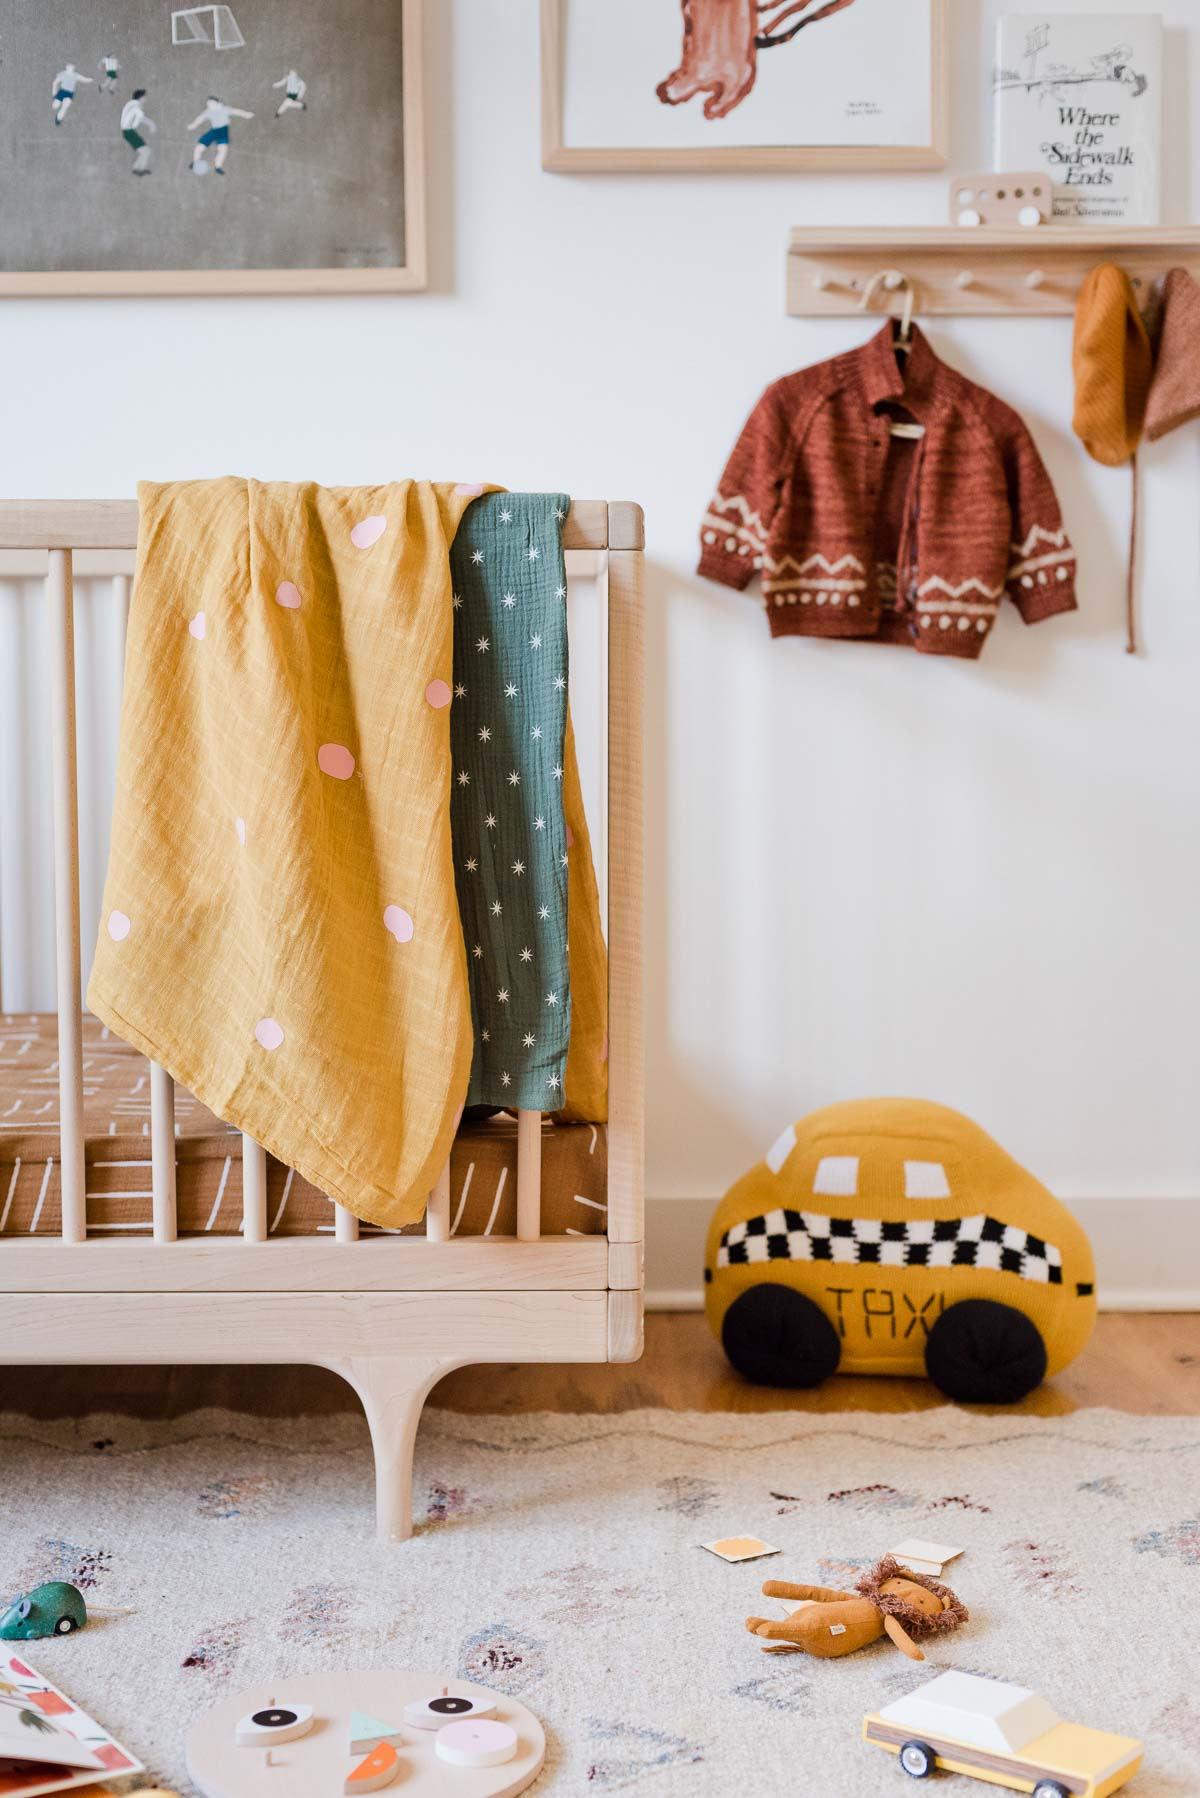 Gender neutral nursery with colorful blankets hanging over crib